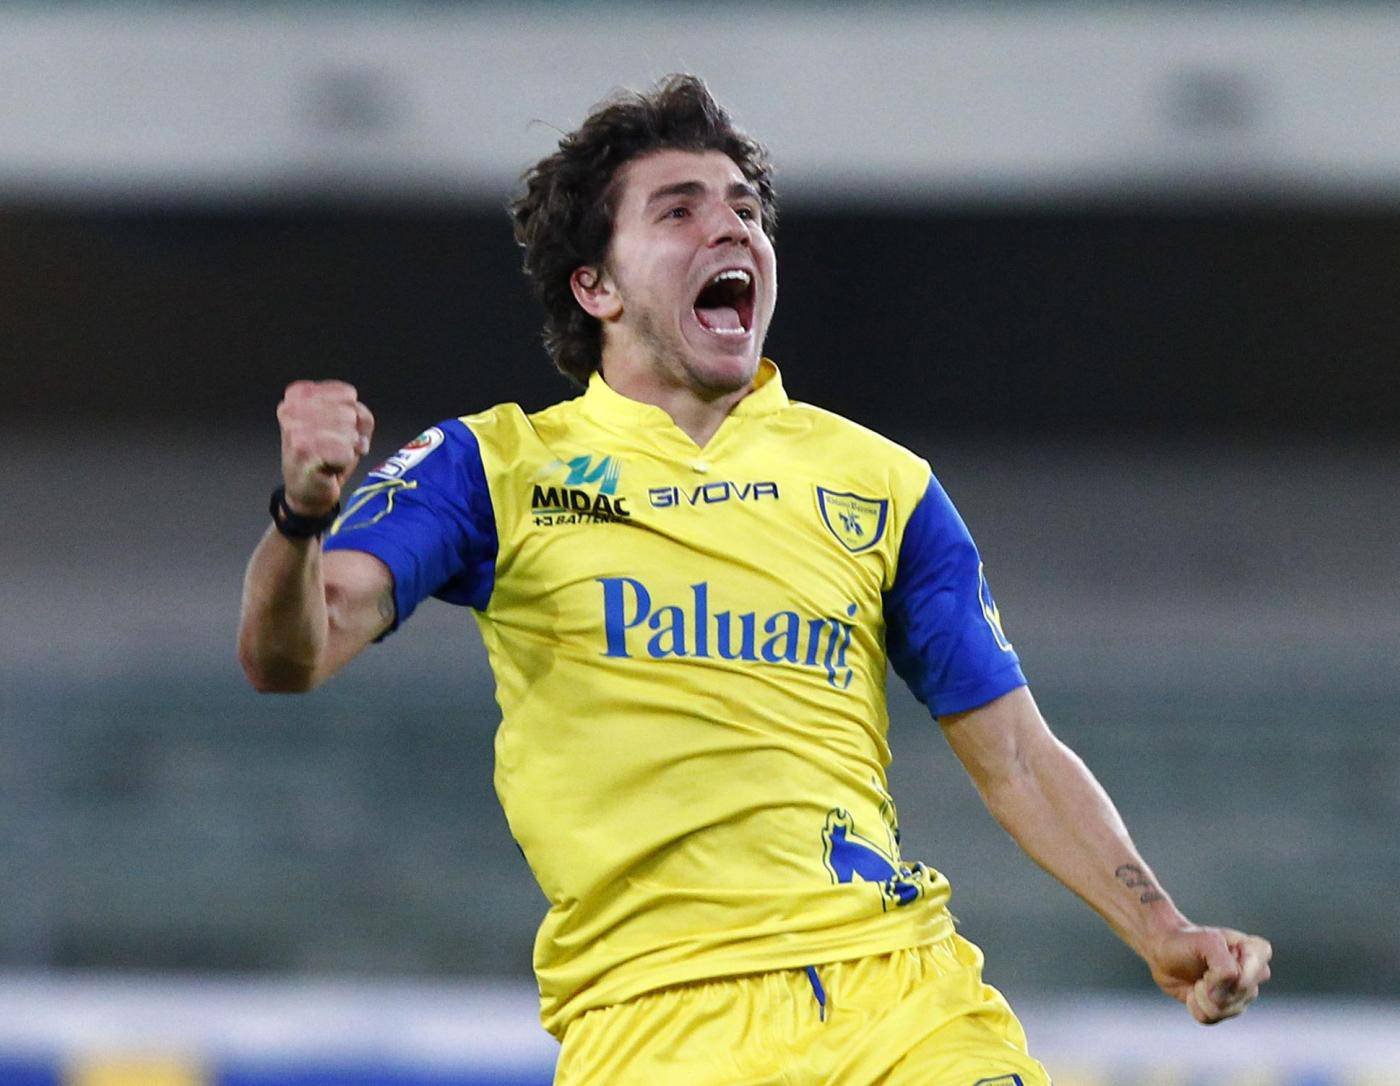 chievo cagliari - photo #20